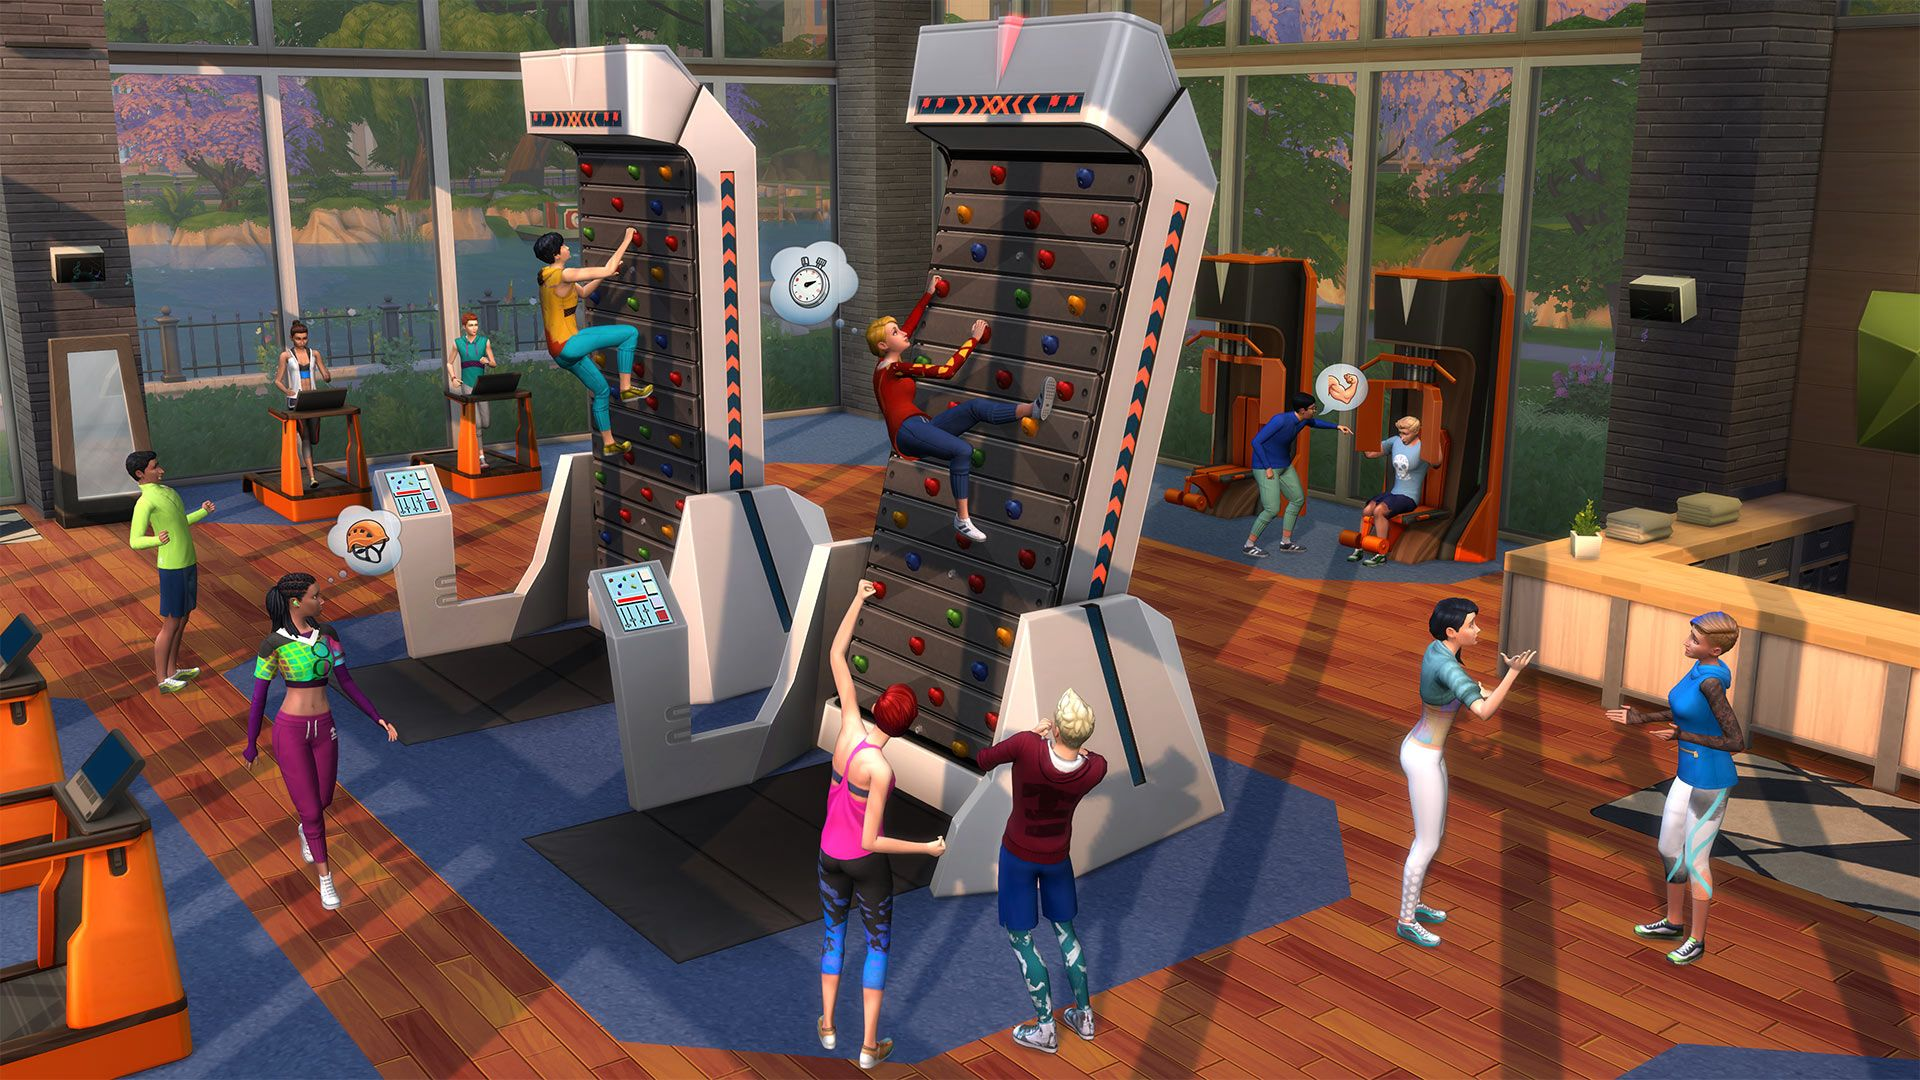 The Sims 4 Fitness Stuff Free Download